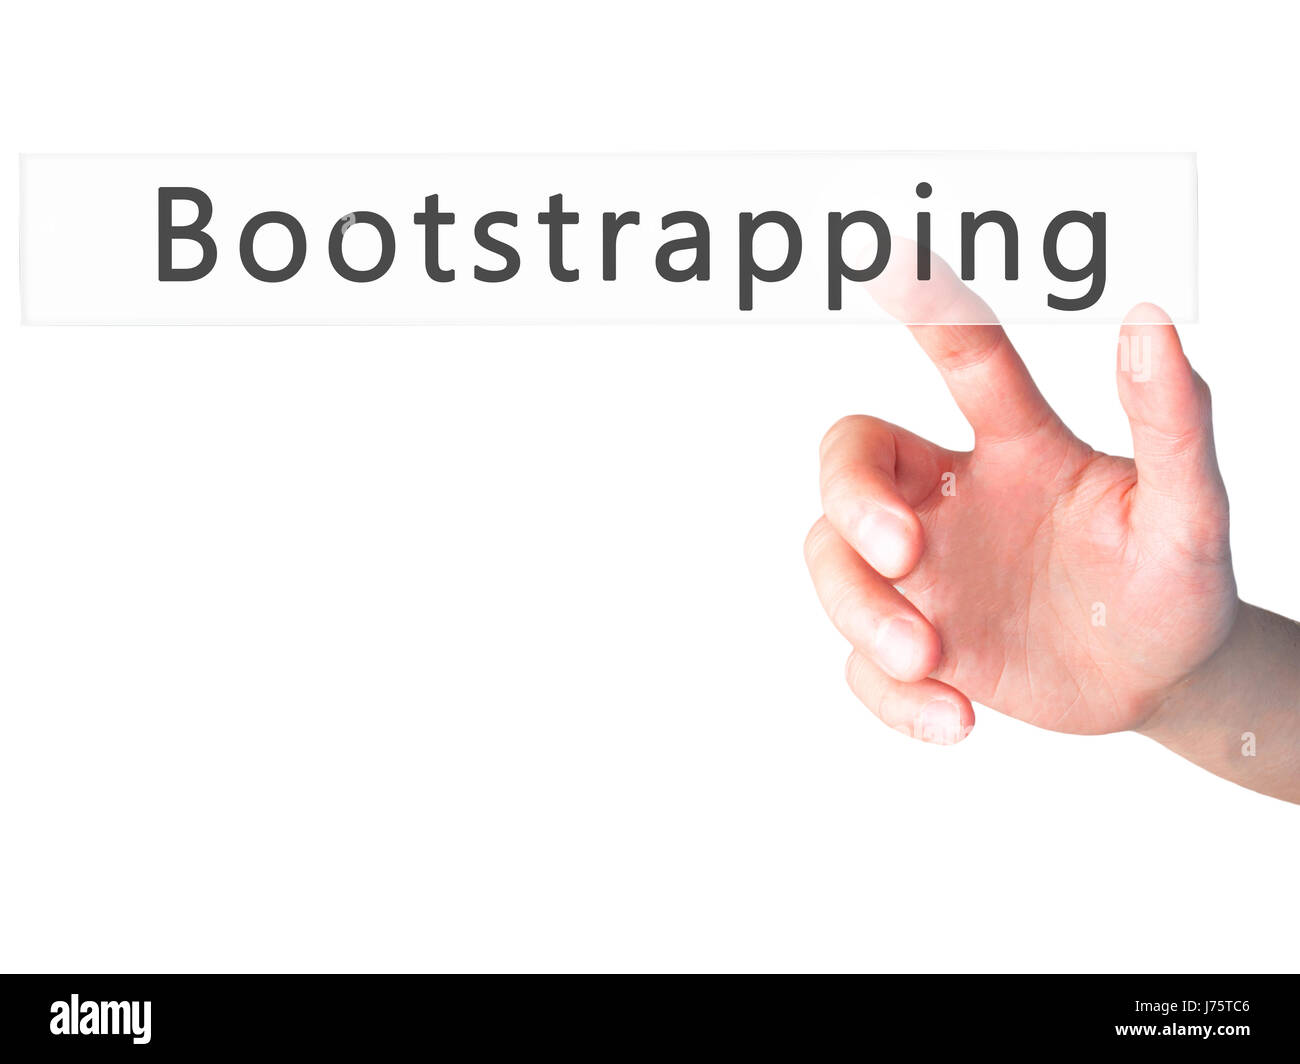 Bootstrapping - Hand pressing a button on blurred background concept . Business, technology, internet concept. Stock - Stock Image